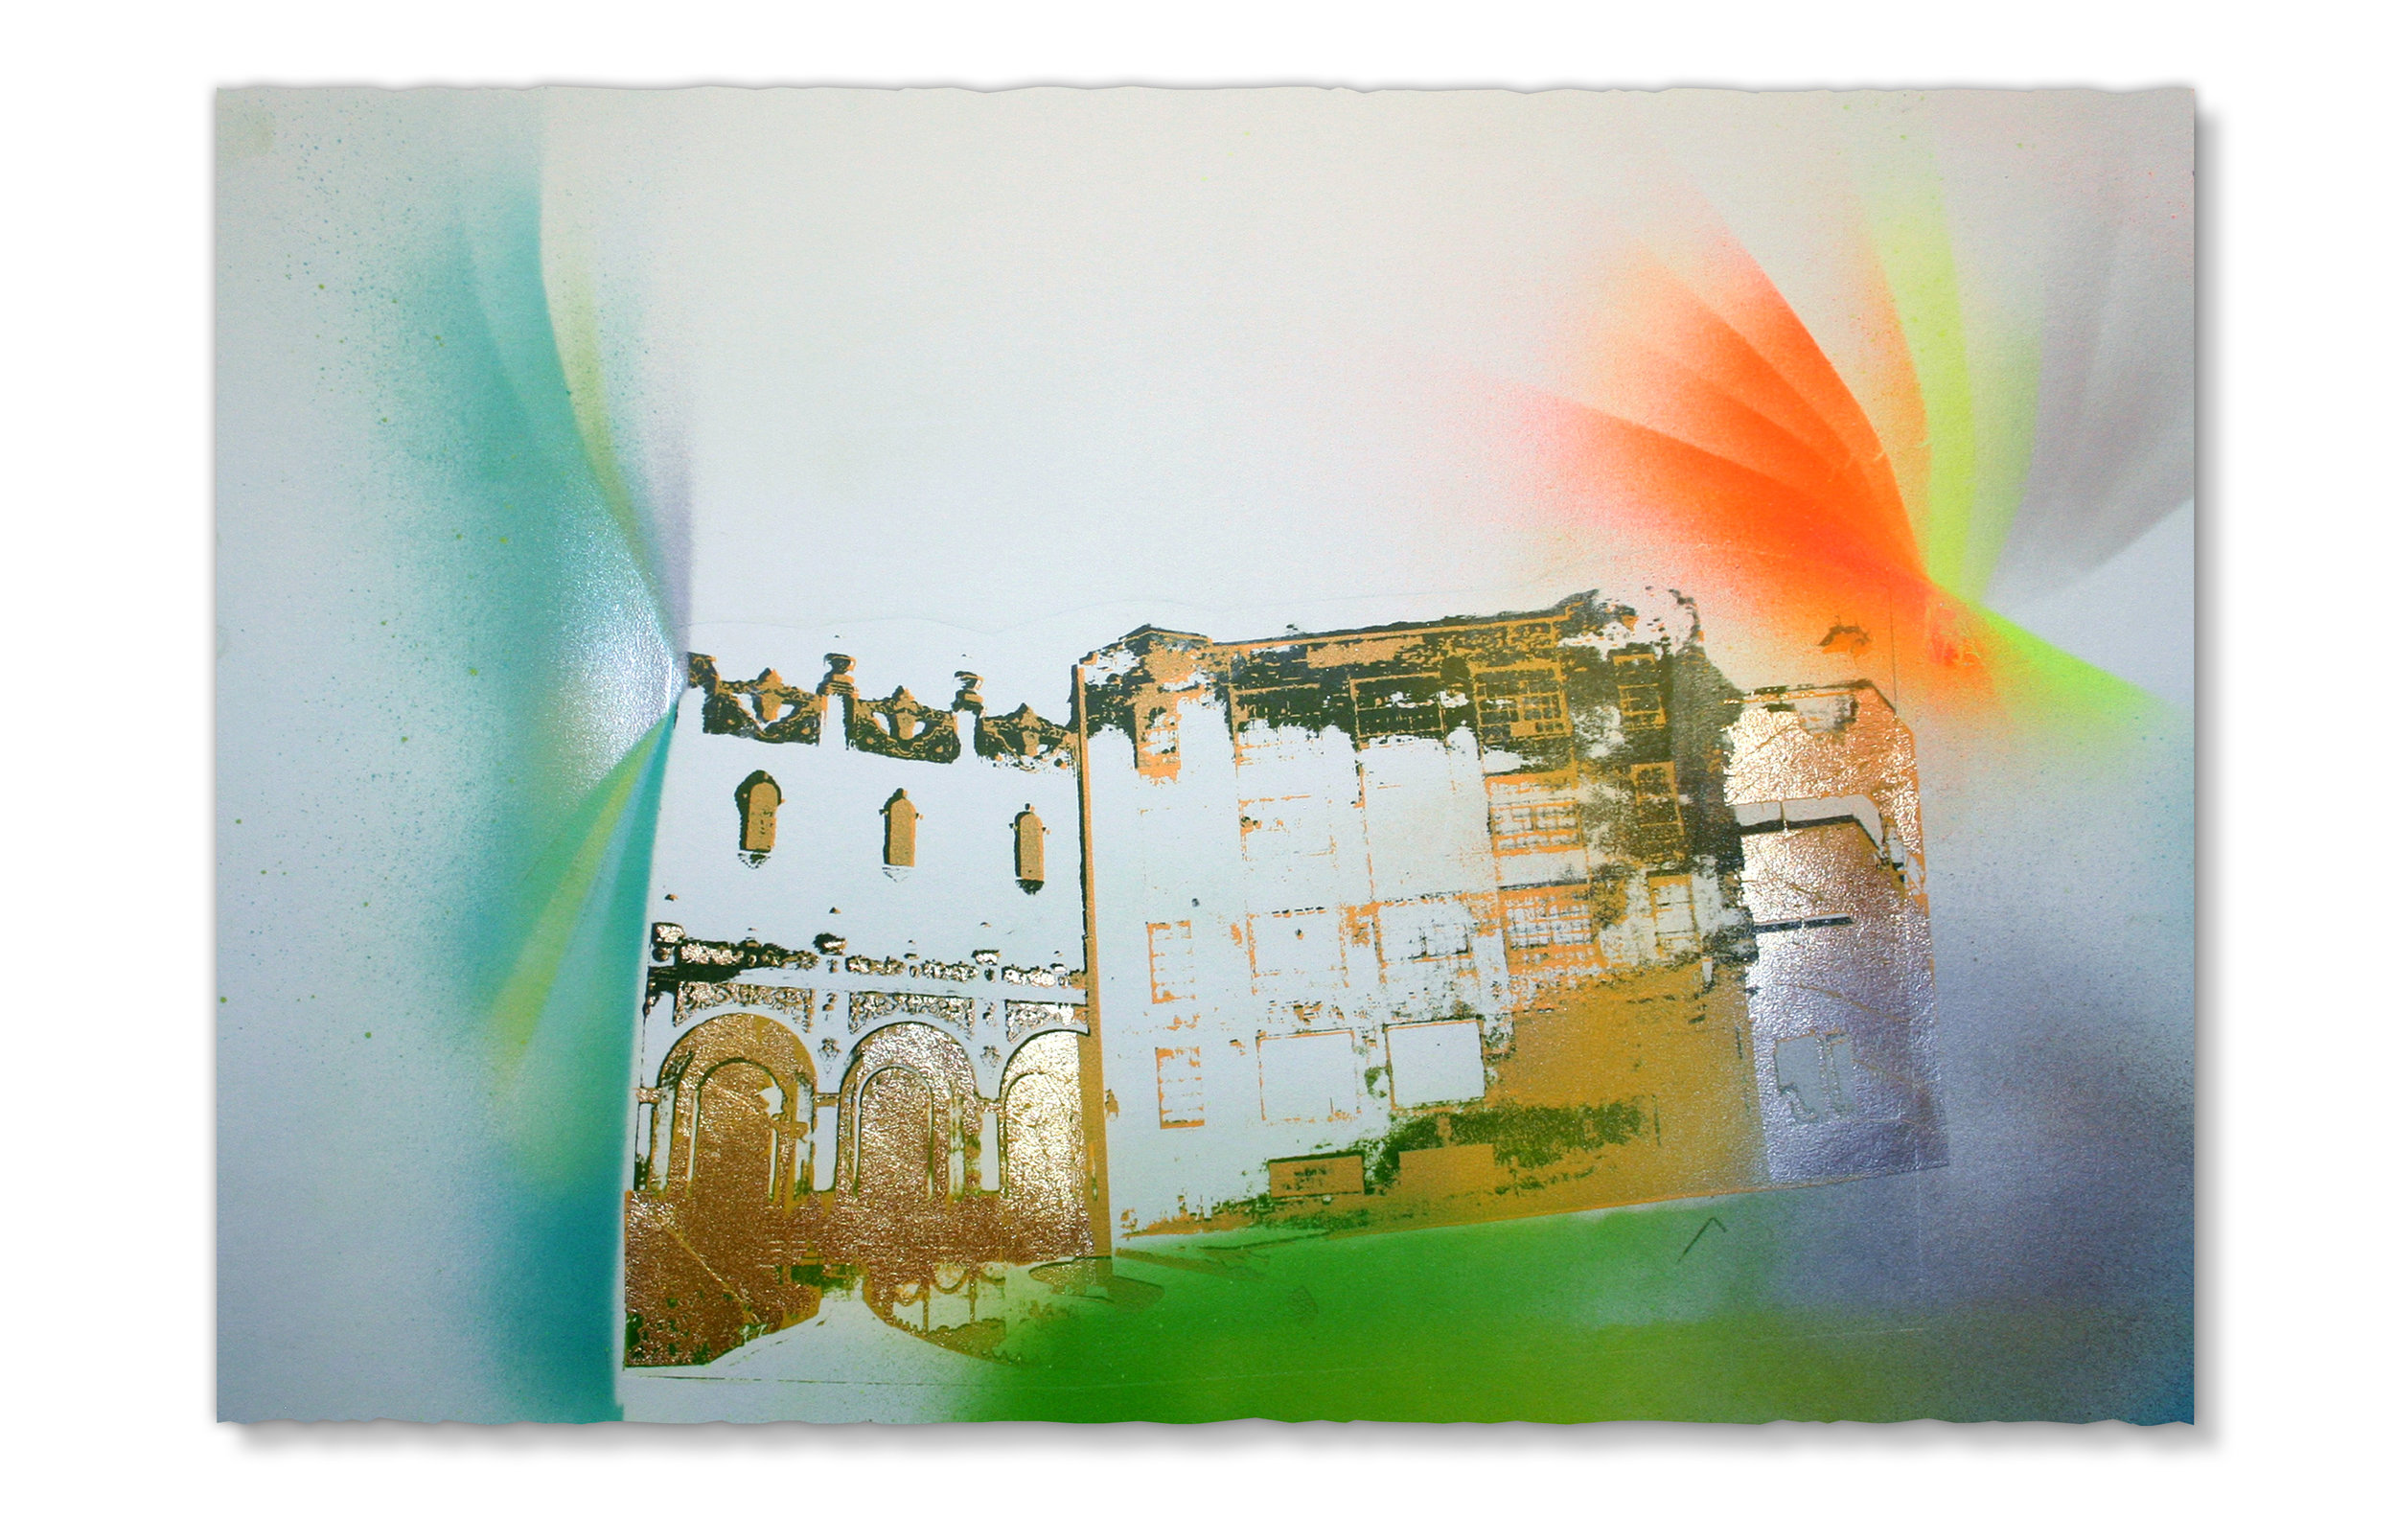 The warehouse across from PAG is almost the same color at Tijuana's Jai Alai stadium,  2015 Photo lithography, screenprint, spray paint and pencil, 15 in H x 22.5 in W